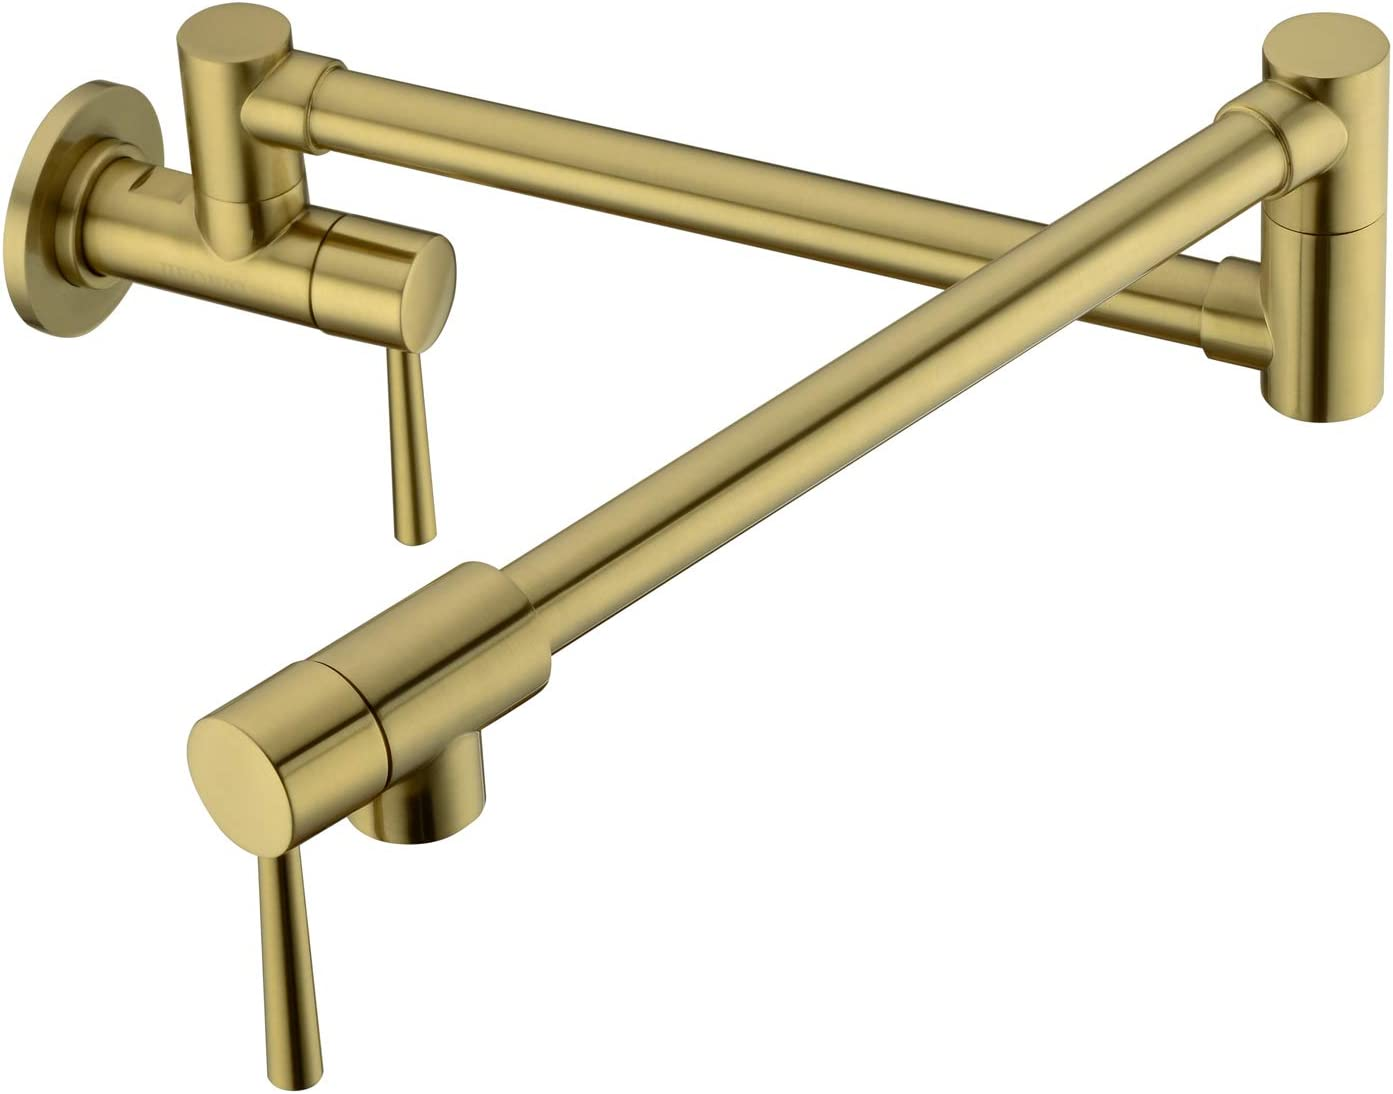 Pirooso Kitchen Pot Filler Faucet Wall Mount Do Brass Department store Max 72% OFF Lead-Free